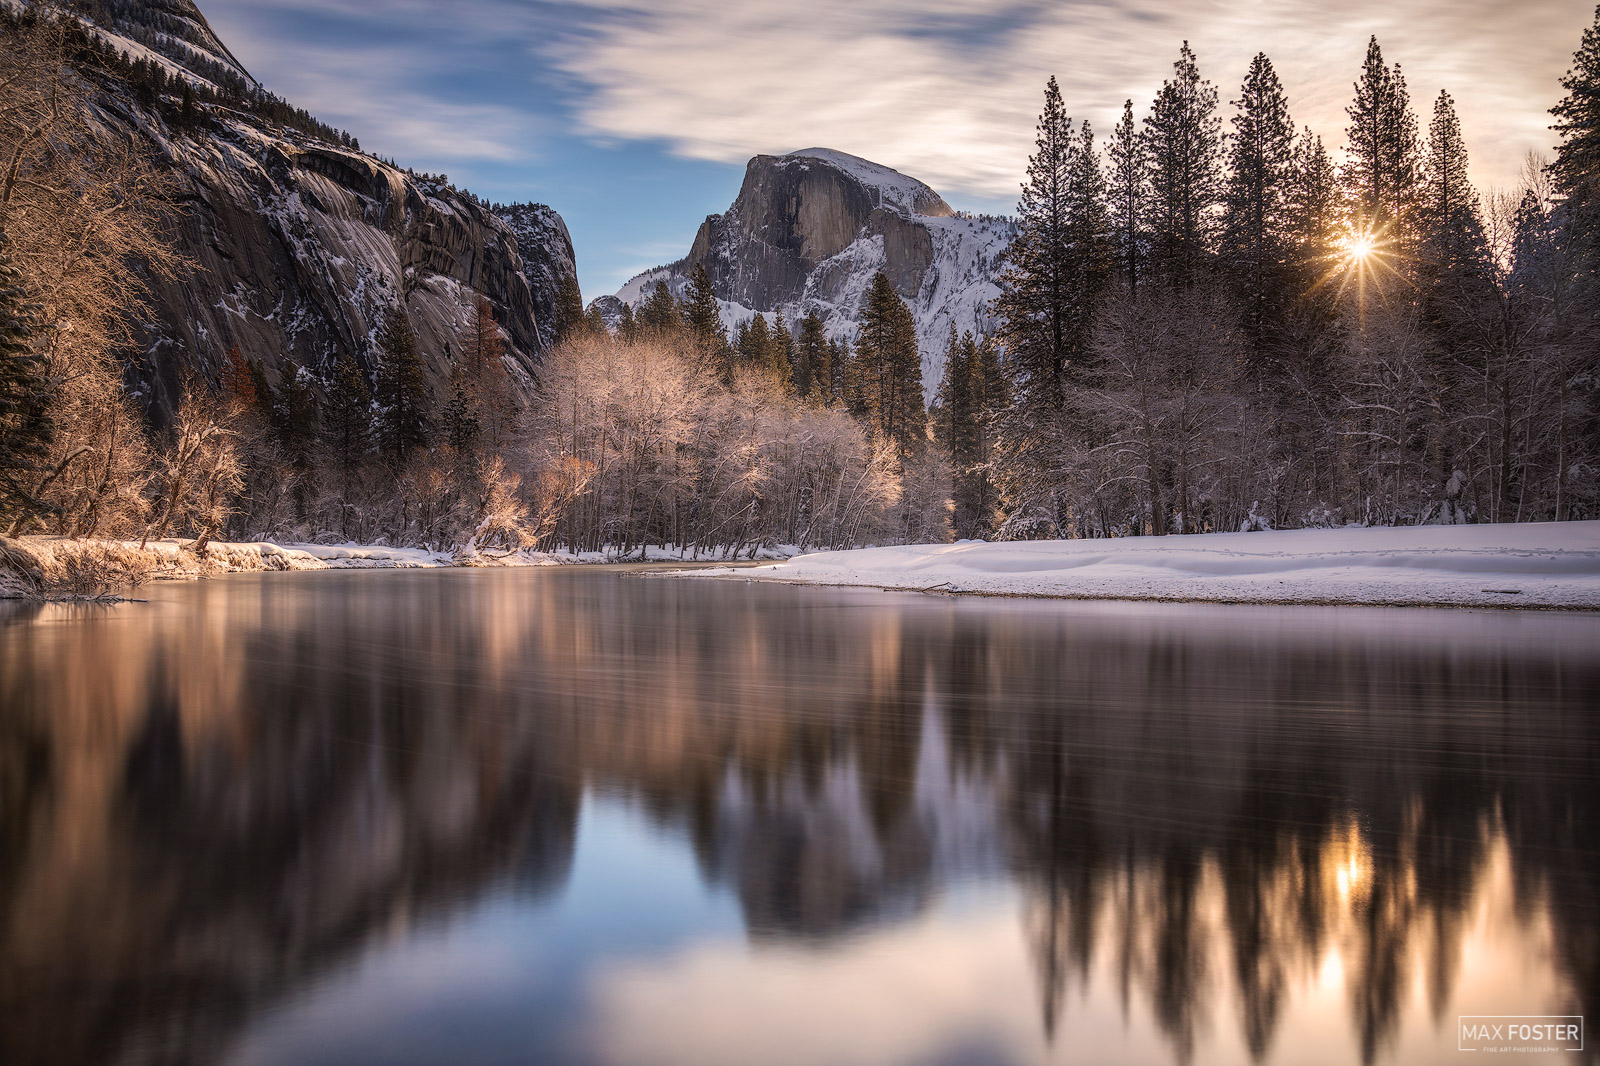 Yosemite National Park, California, Half Dome, Winter Solstice, photo